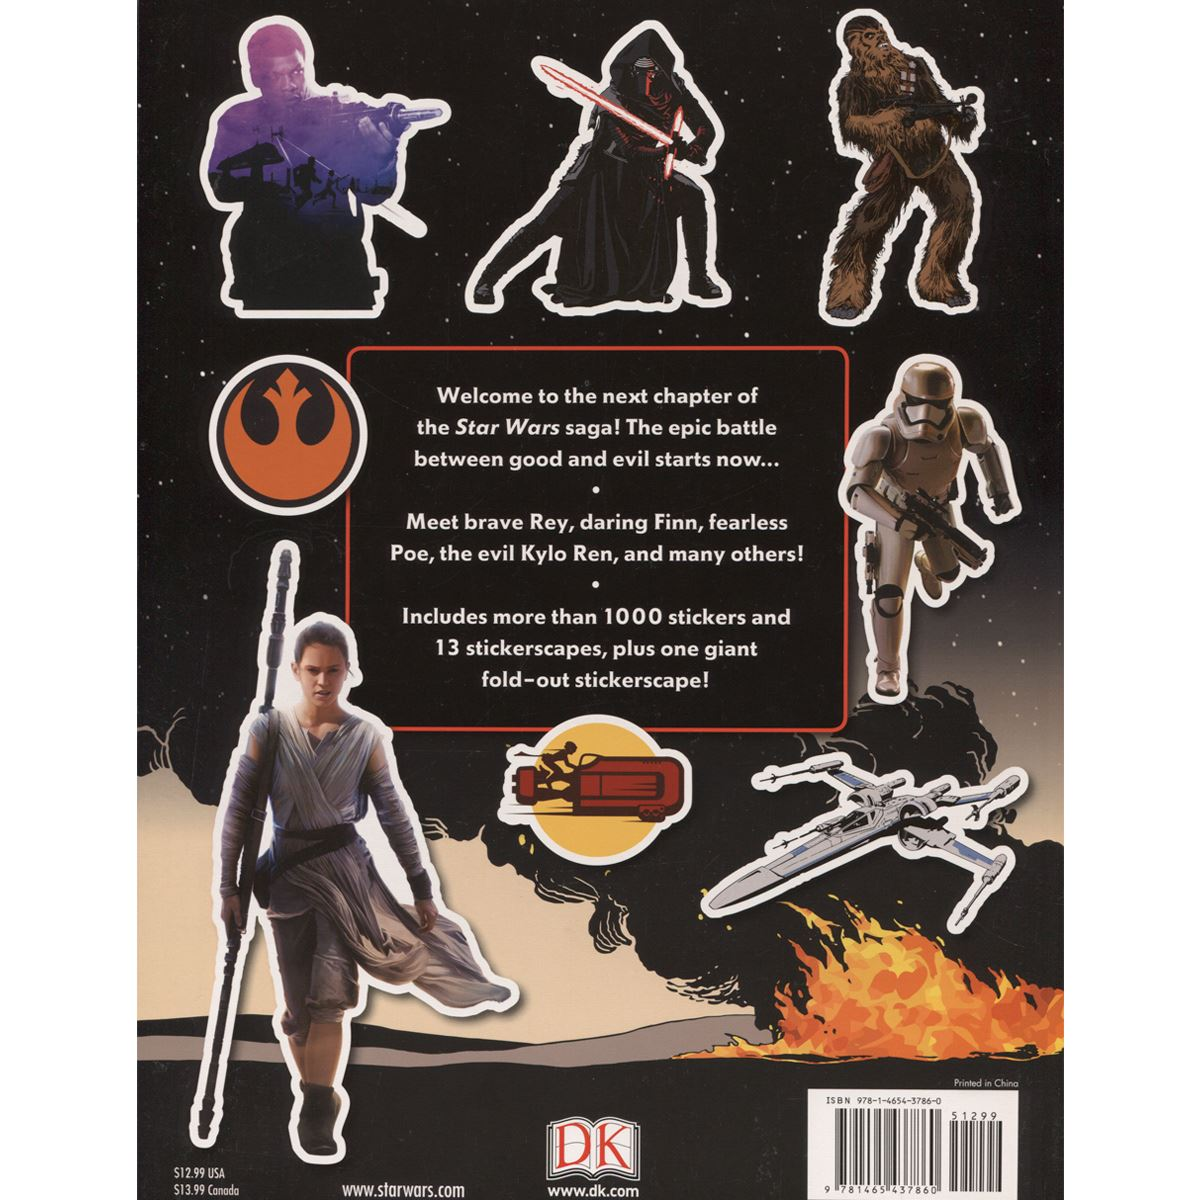 Ultimate sticker collection: star wars: the force awakens stickerscapes Libro - Sanborns